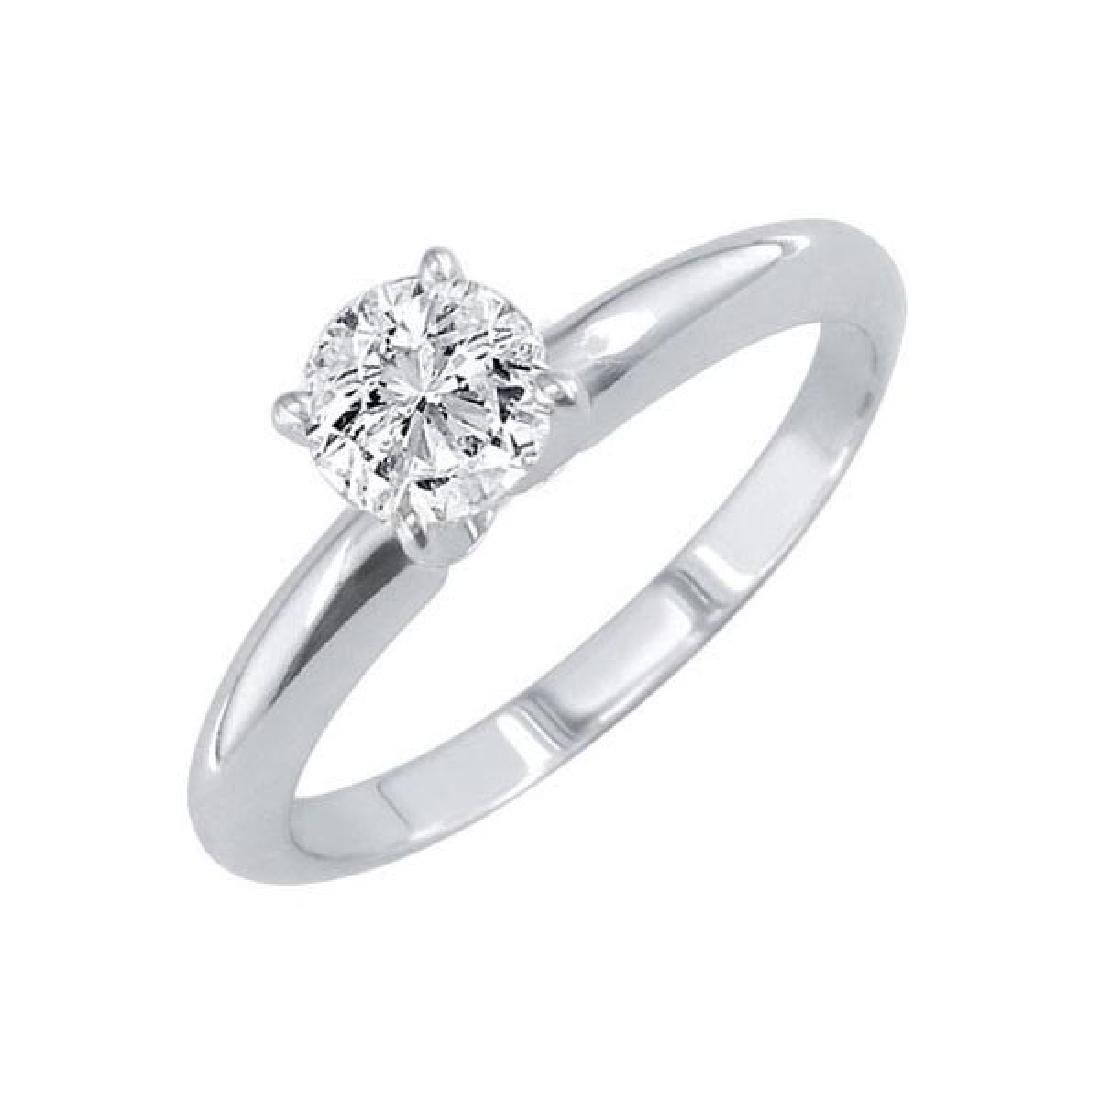 Certified 0.92 CTW Round Diamond Solitaire 14k Ring D/S